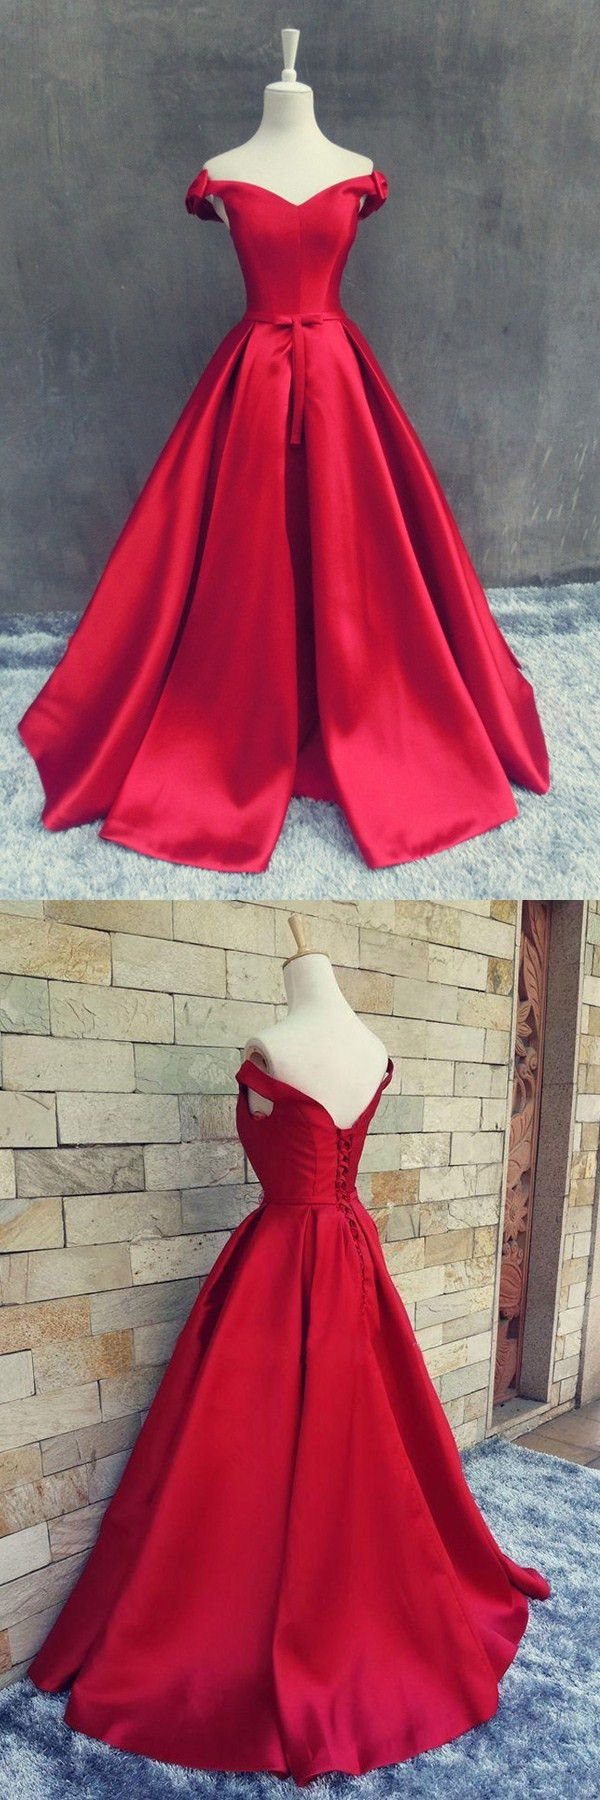 prom dresses,red prom dresses,sexy off shoulder prom dresses,lace up evening dresses,evening dresses,red evening dresses,party dresses,cute red party dresses,vestidos,kied